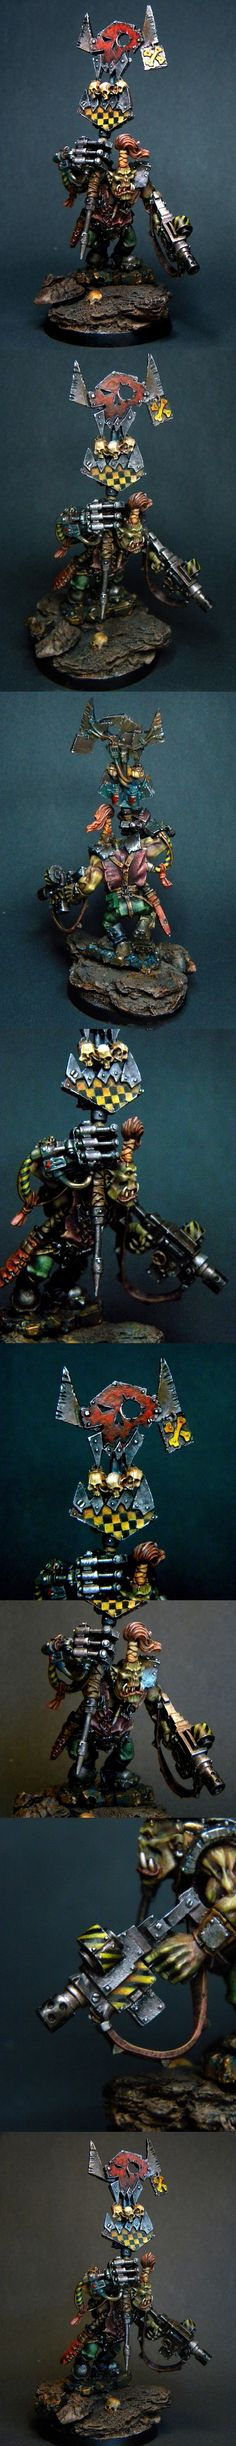 Orc with a power claw and banner Vaagh!